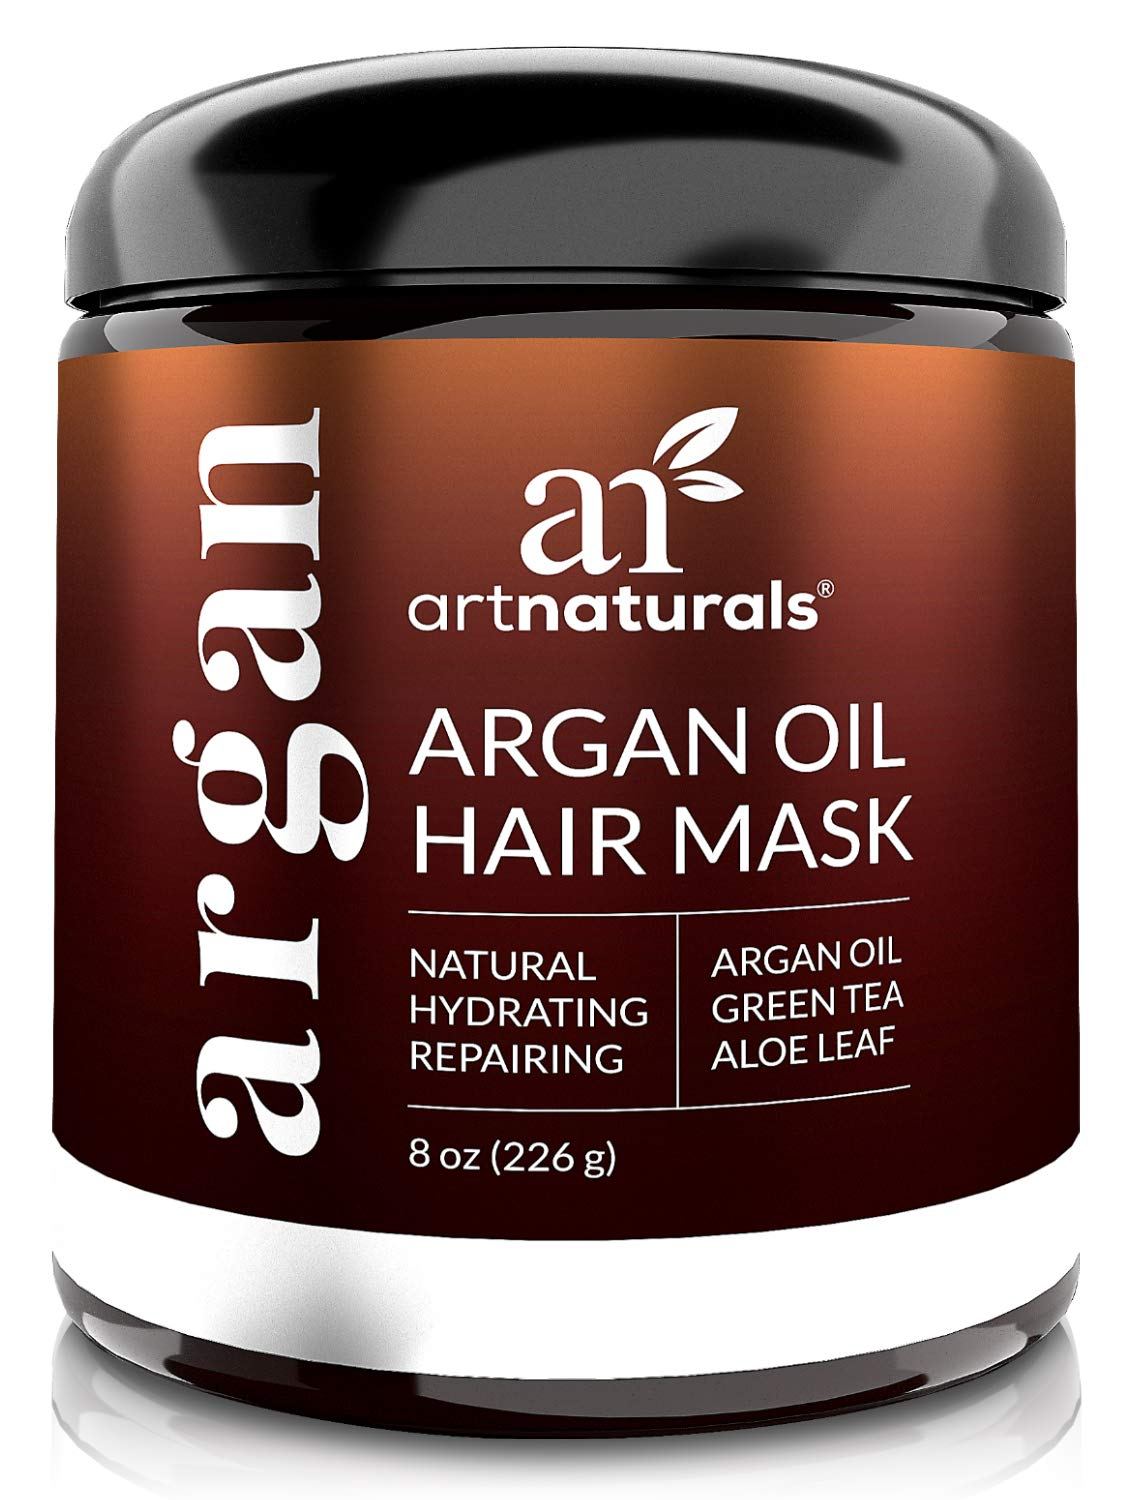 ArtNaturals Argan Oil Hair Mask - (8 Oz/226g) - Deep Conditioner - 100% Organic Jojoba Oil, Aloe Vera & Keratin - Repair Dry, Damaged Or Color Treated Hair After Shampoo - Sulfate Free by ArtNaturals (Image #1)